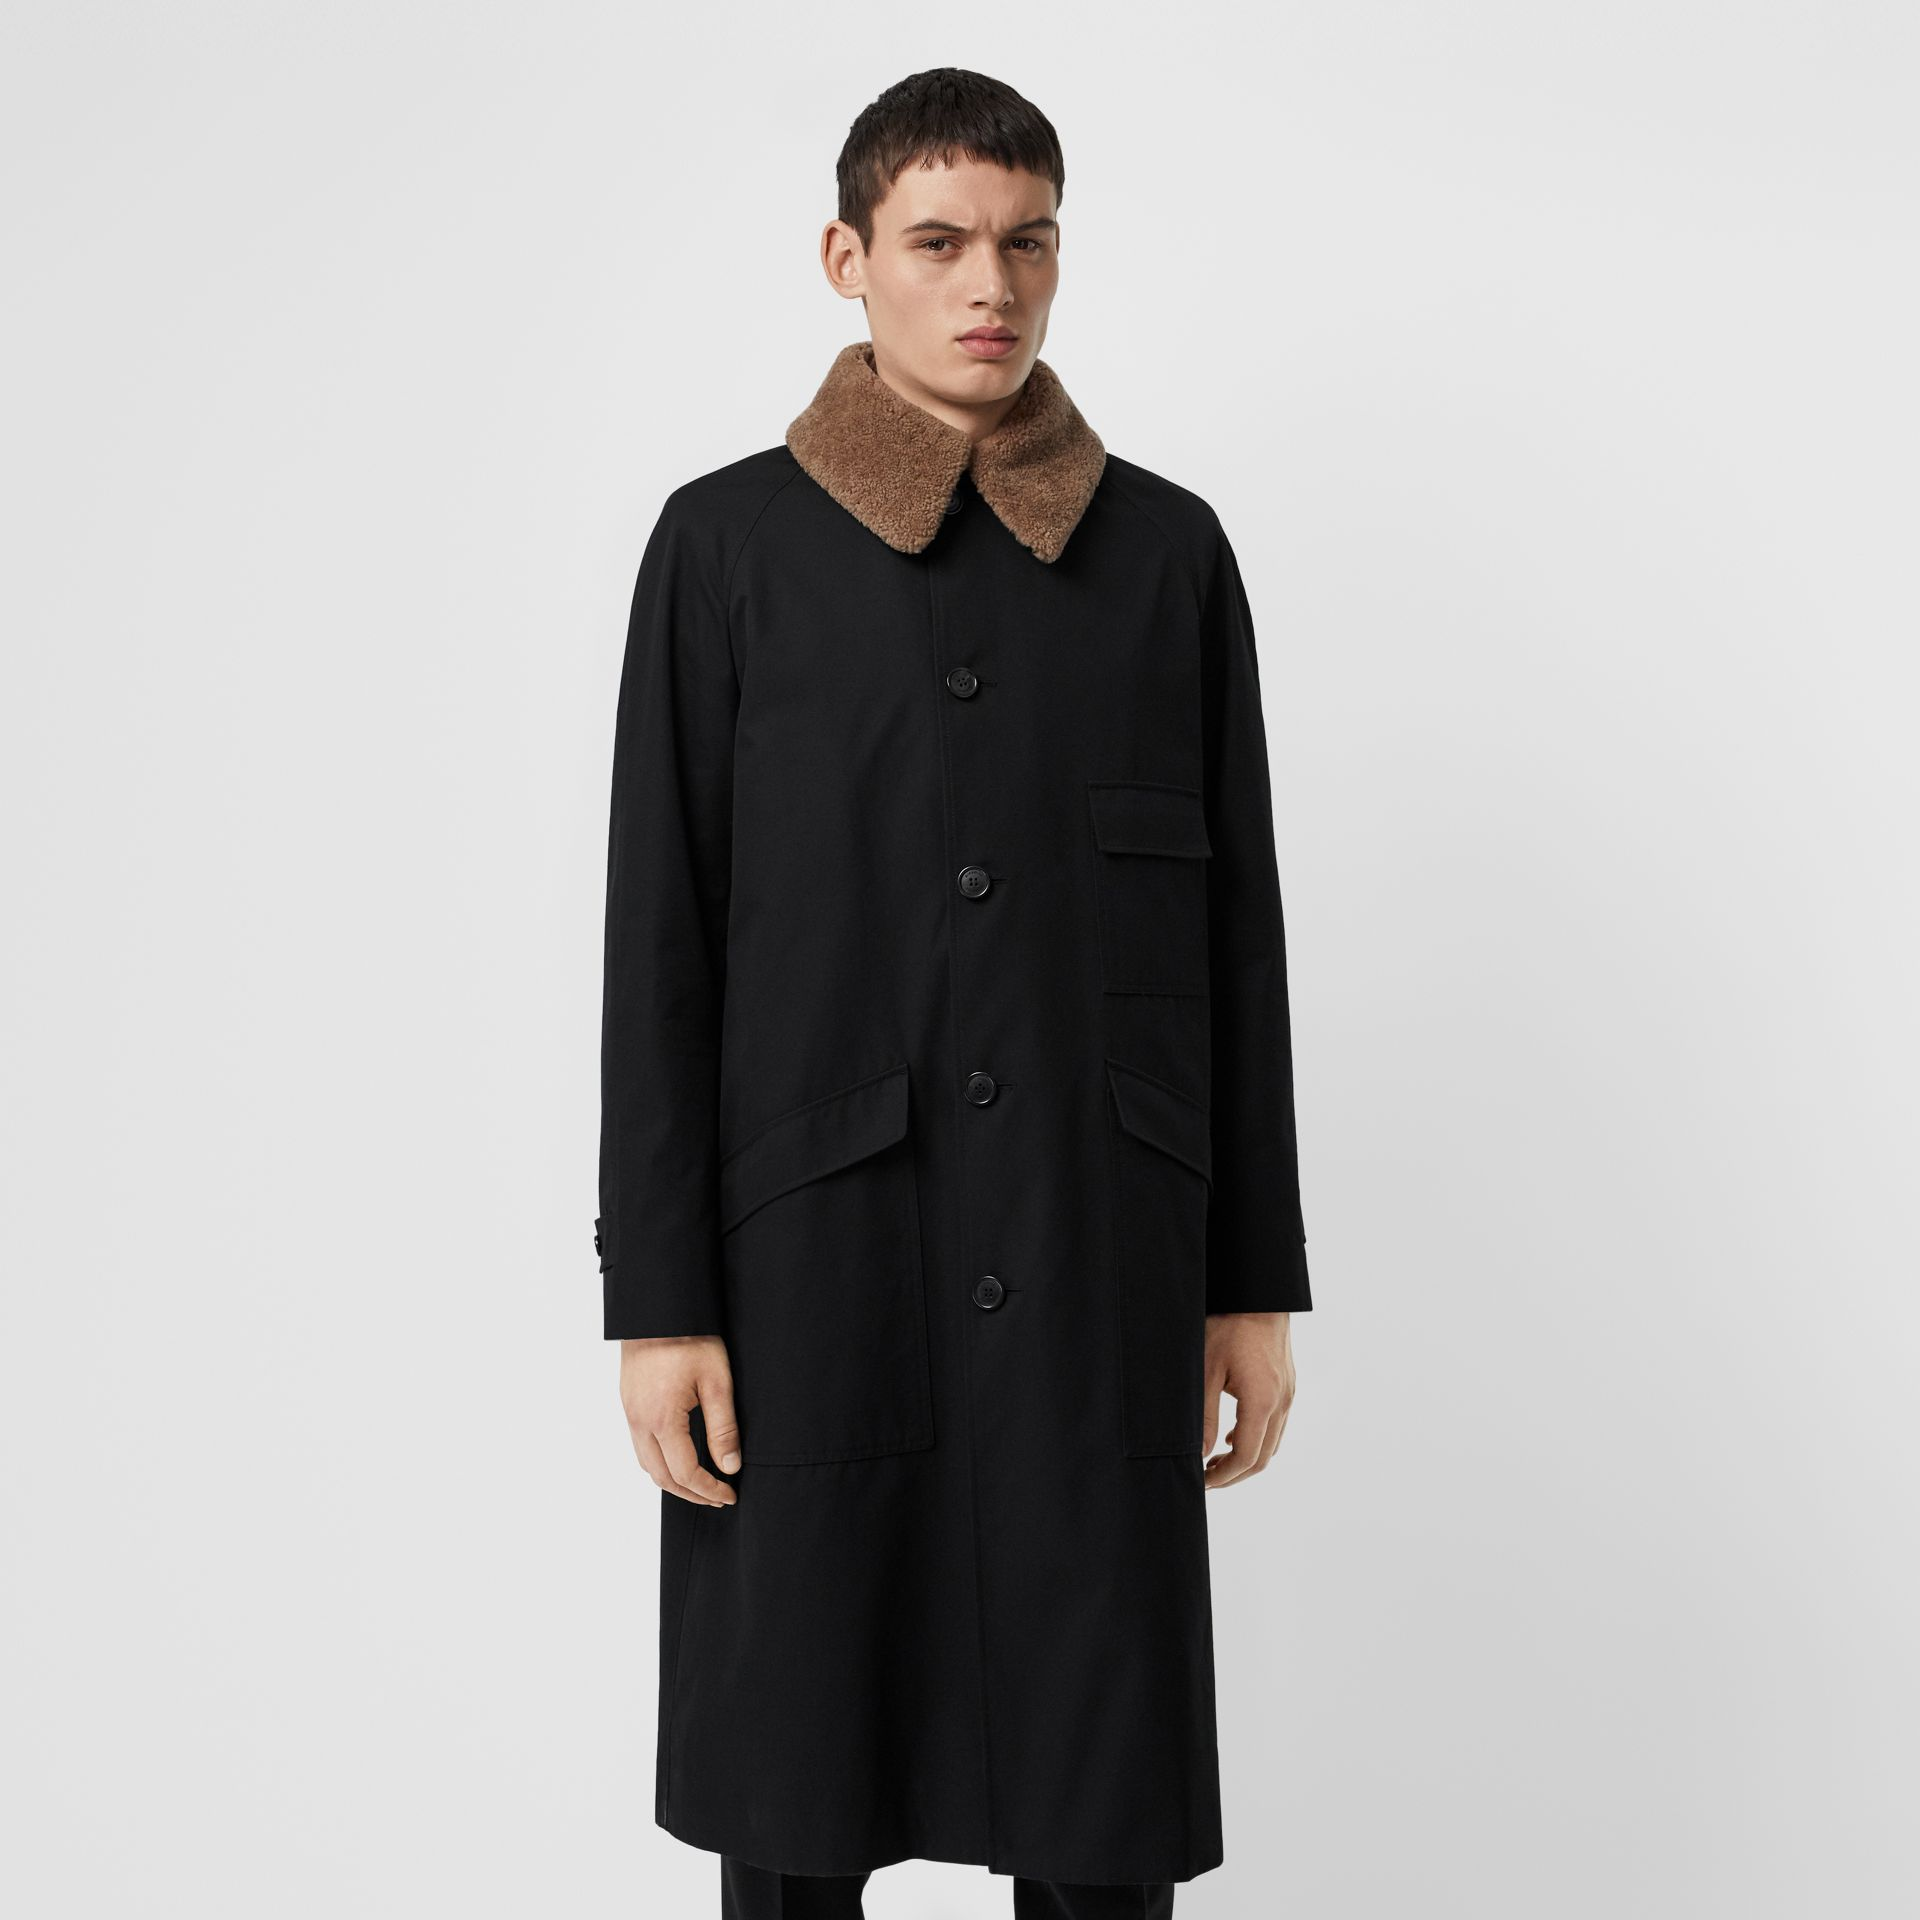 Contrast Shearling Collar Cotton Car Coat in Black - Men | Burberry Canada - gallery image 6